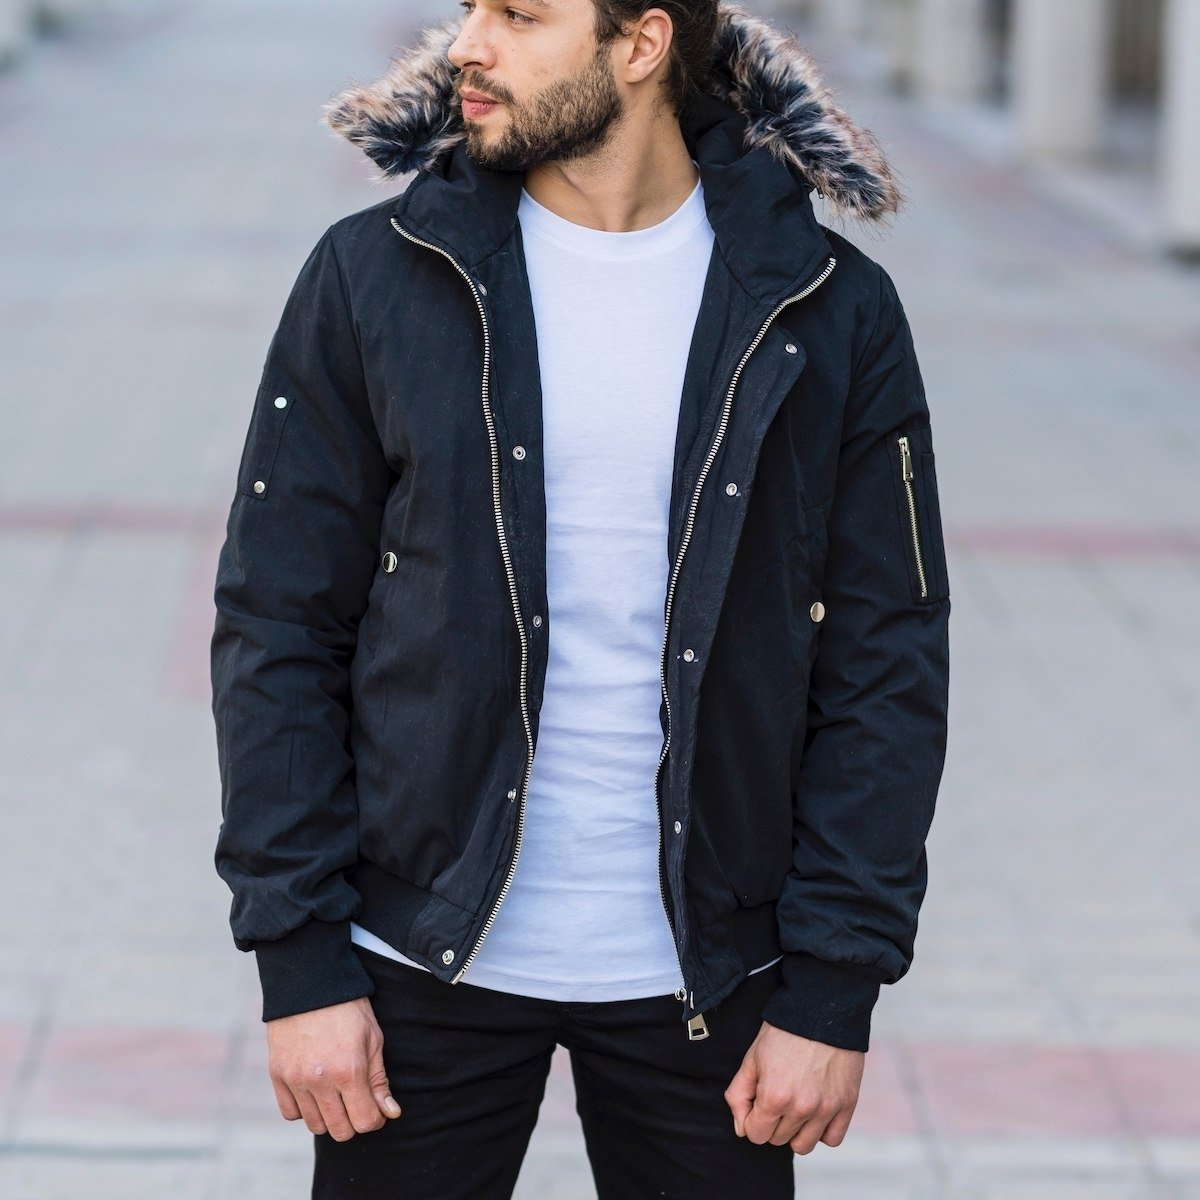 Men's Hooded Furry Jacket In Black